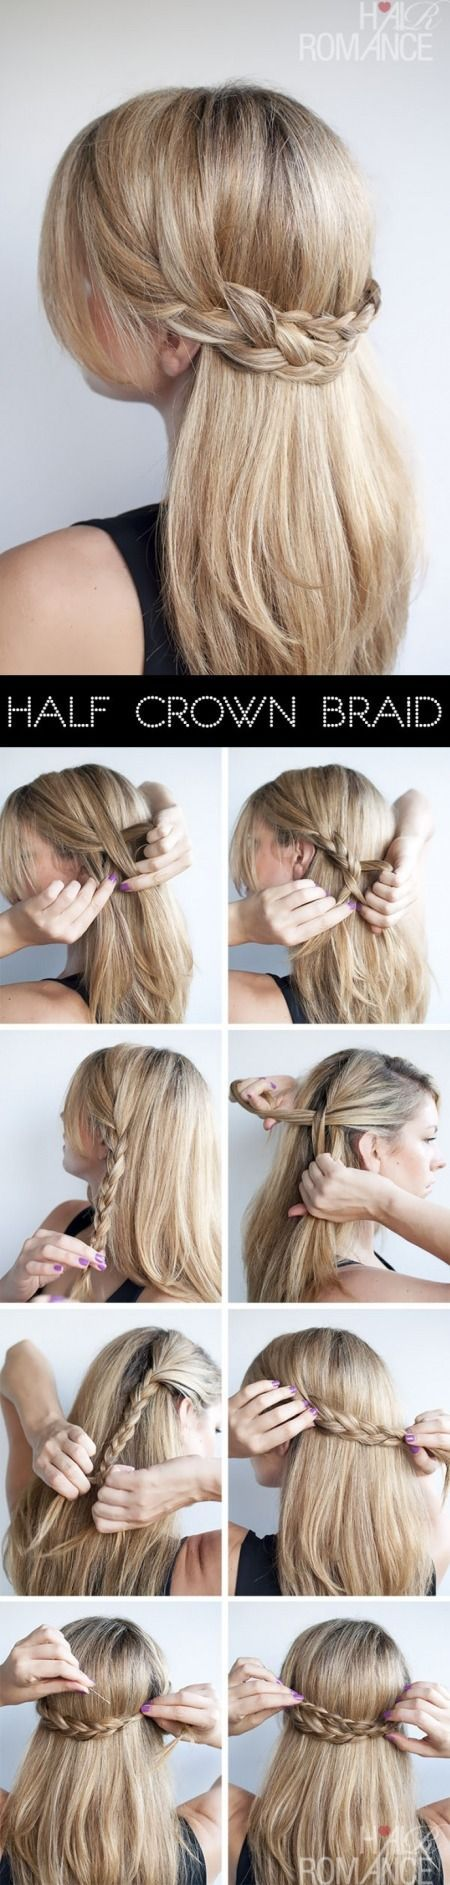 Phenomenal 1000 Ideas About Easy Hairstyles On Pinterest Hairstyles For Hairstyle Inspiration Daily Dogsangcom